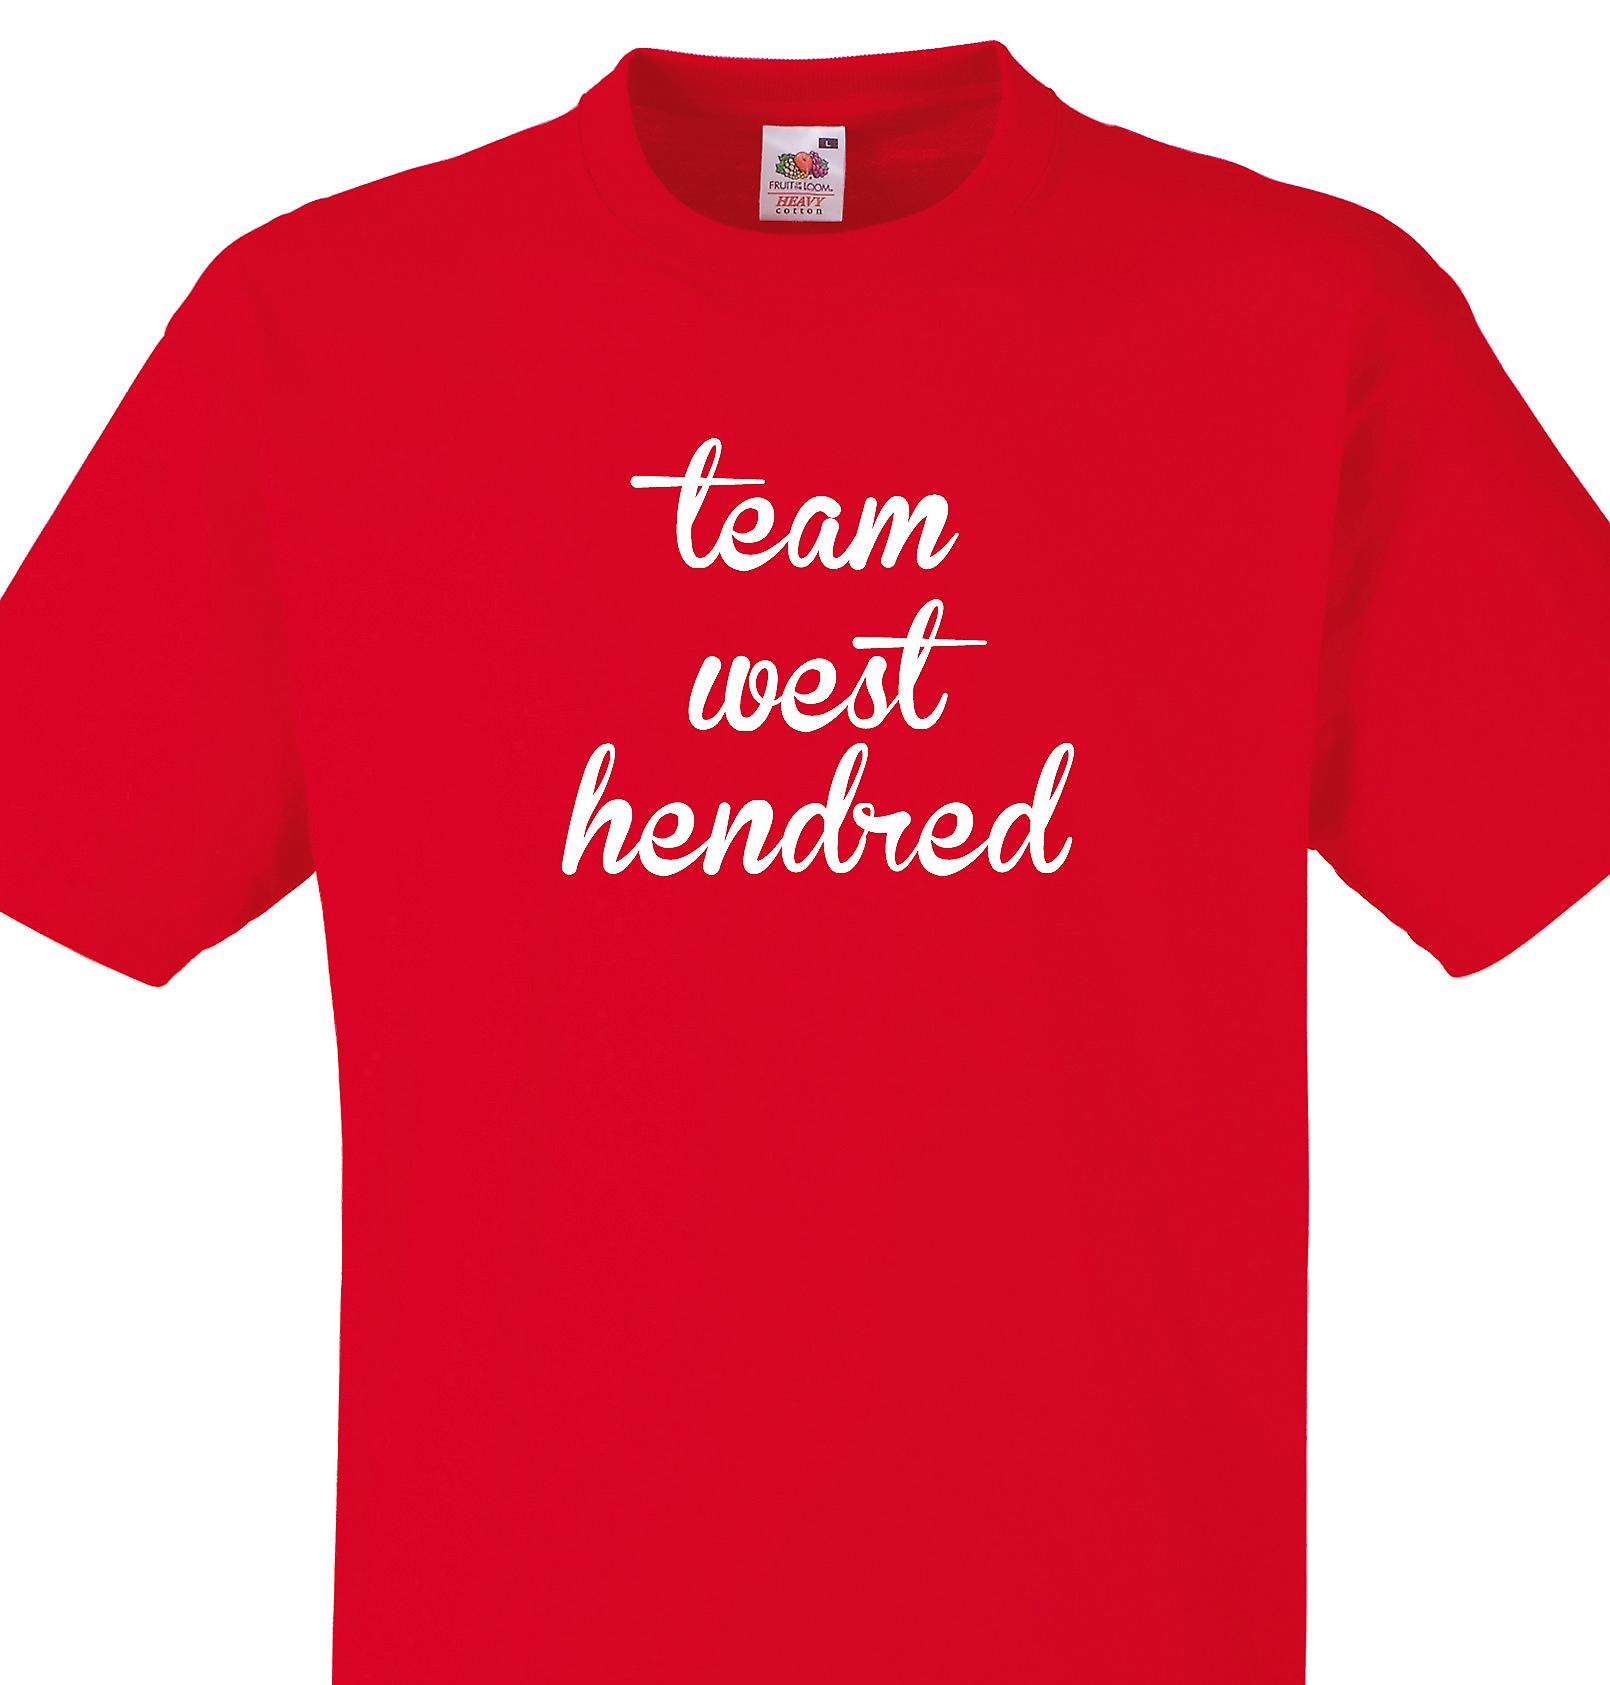 Team West hendred Red T shirt